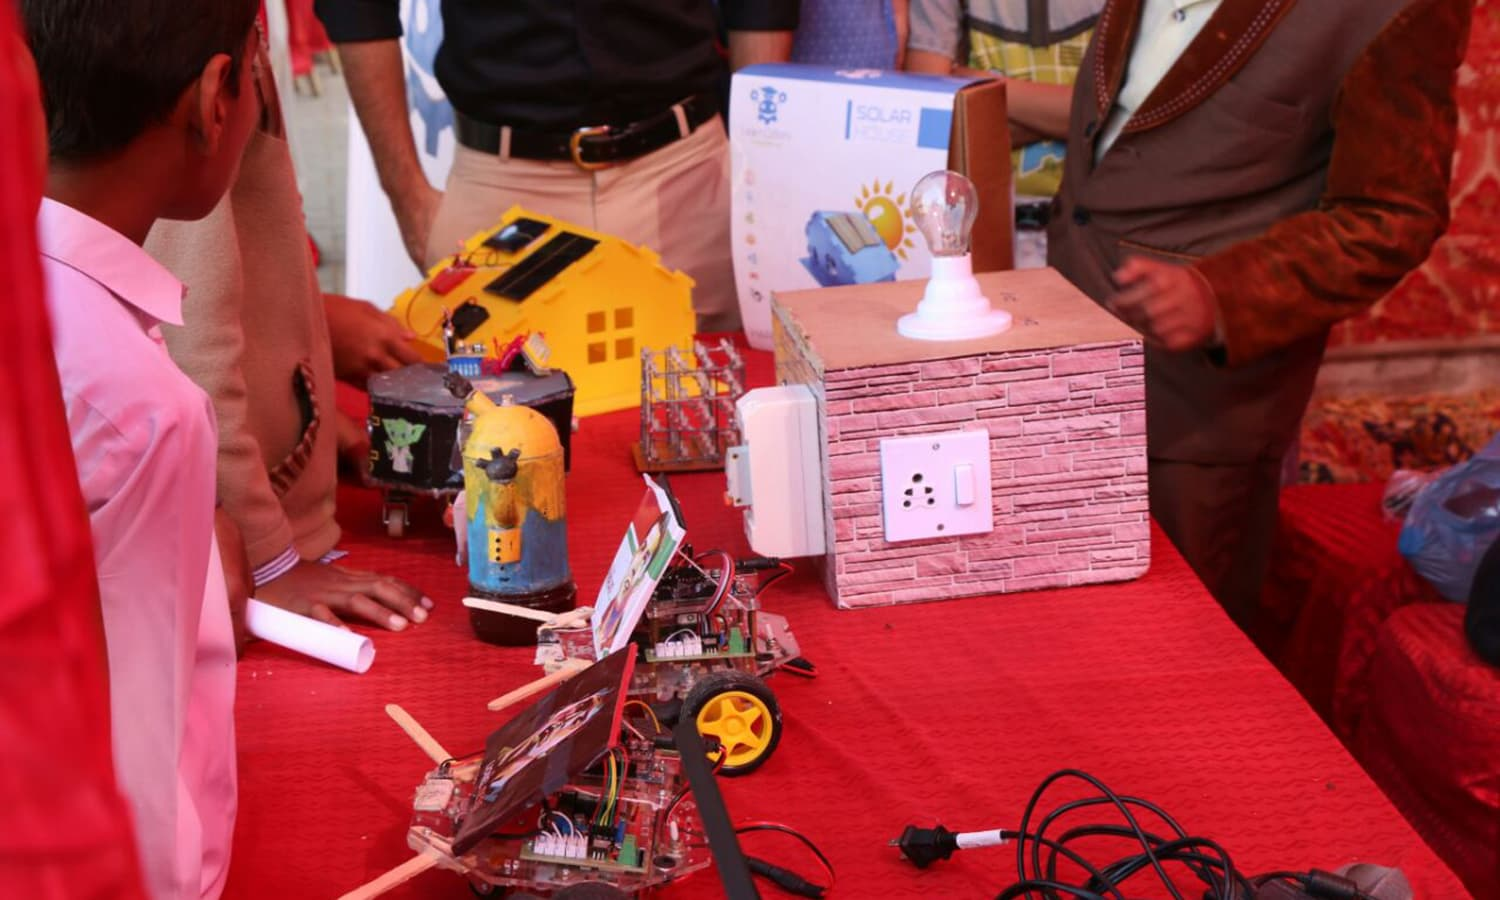 A model at Thar Science Festival — Photo by author